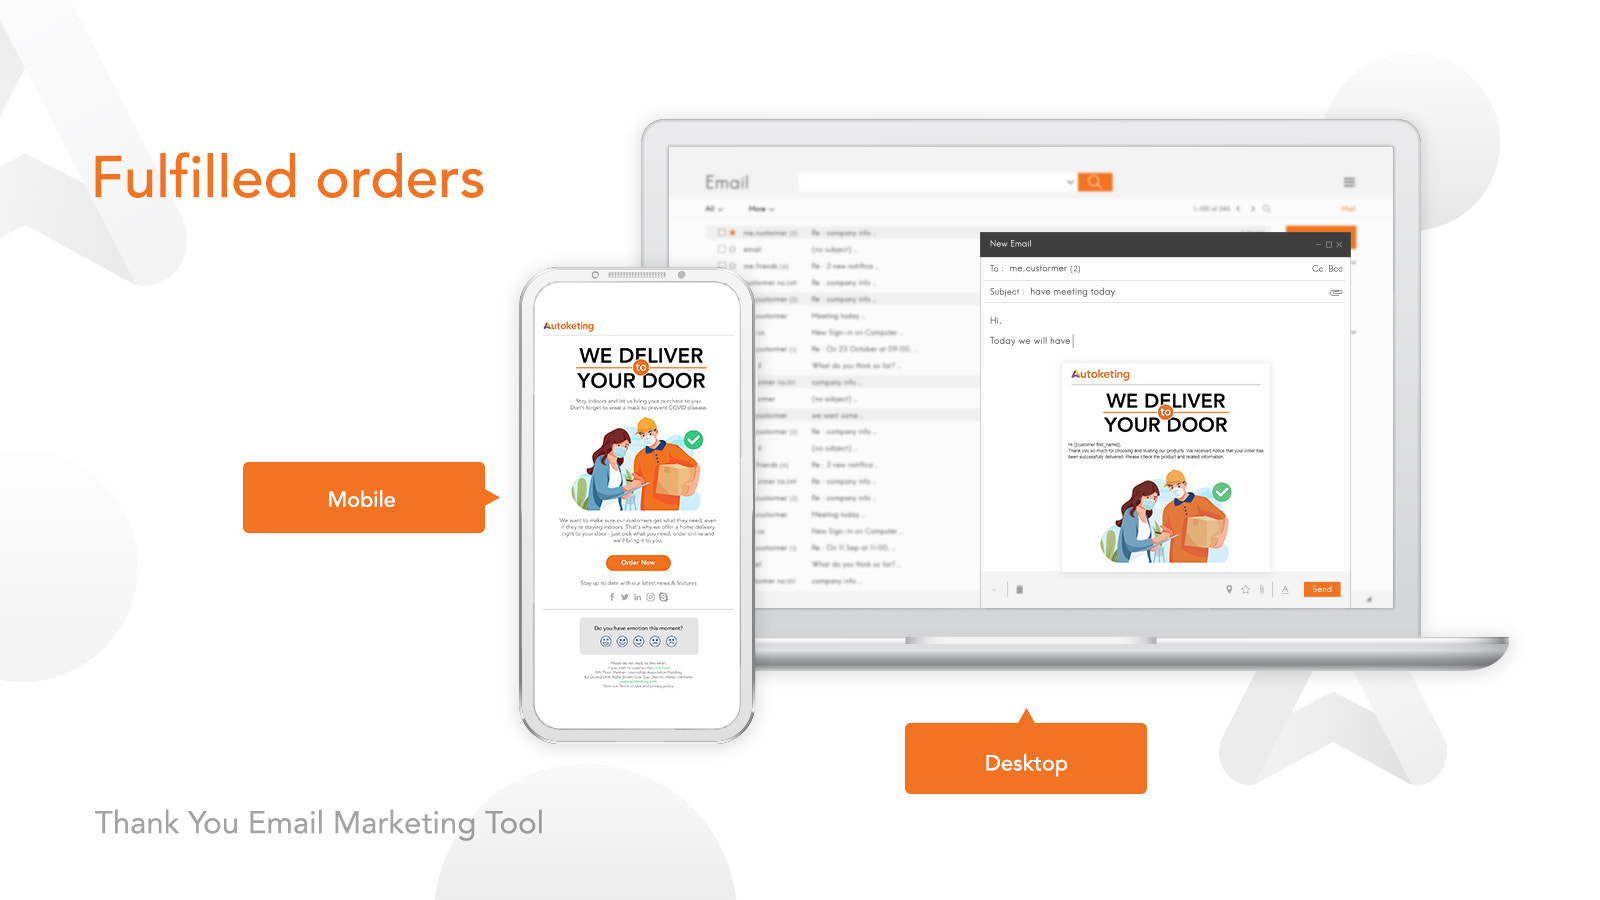 Thank You Email Marketing Tool Fulfilled Orders